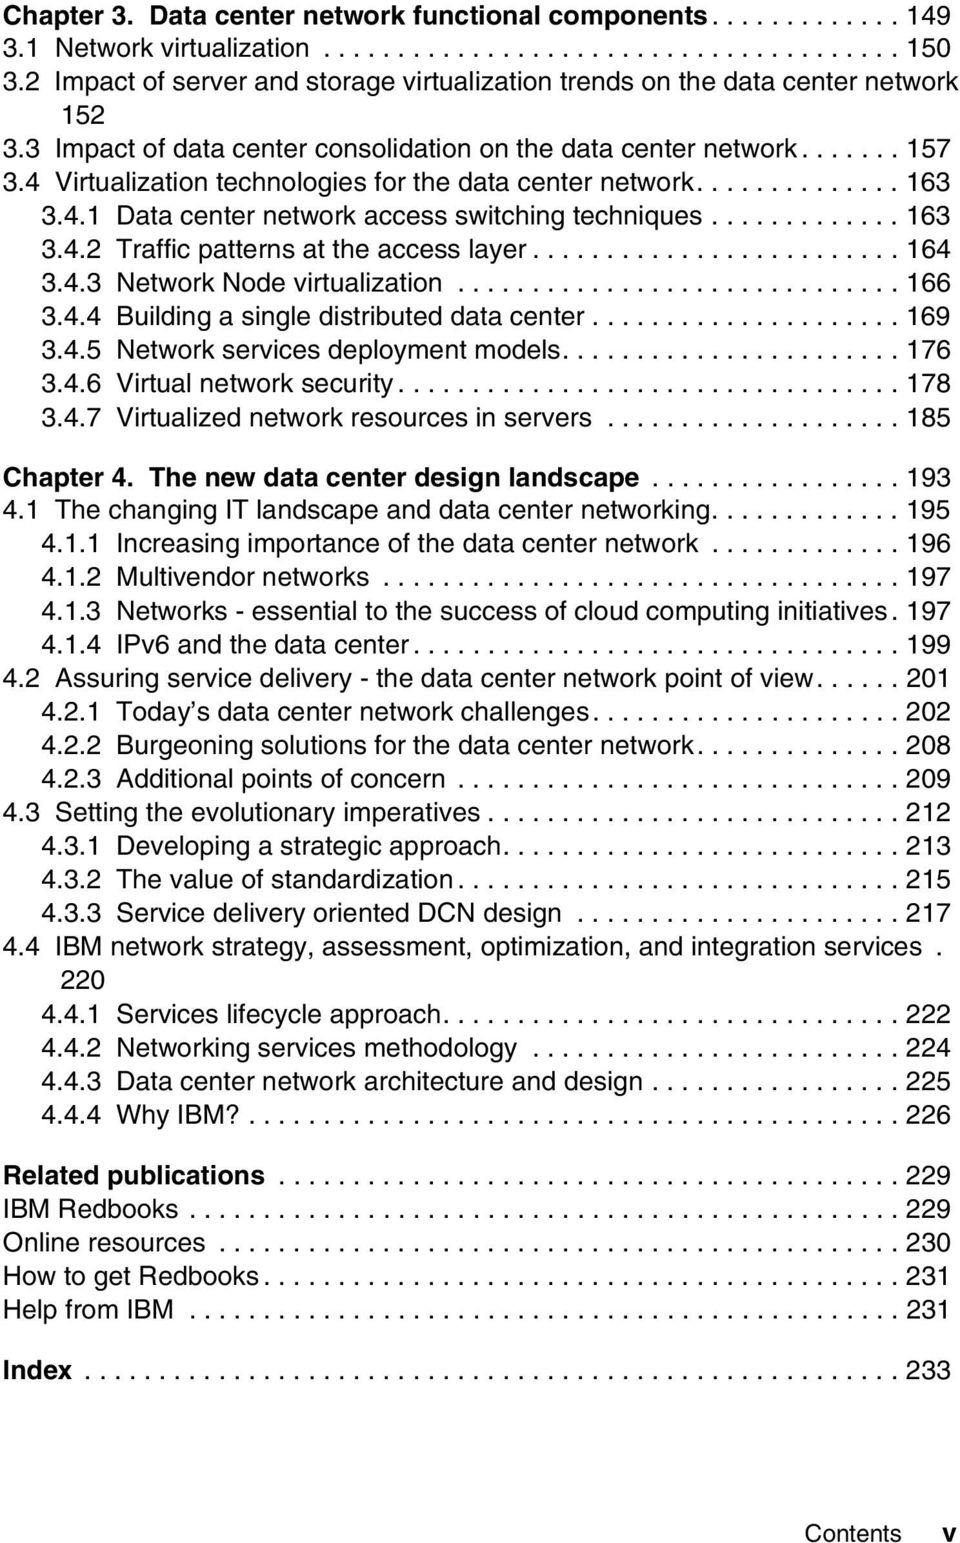 4 Virtualization technologies for the data center network.............. 163 3.4.1 Data center network access switching techniques............. 163 3.4.2 Traffic patterns at the access layer......................... 164 3.